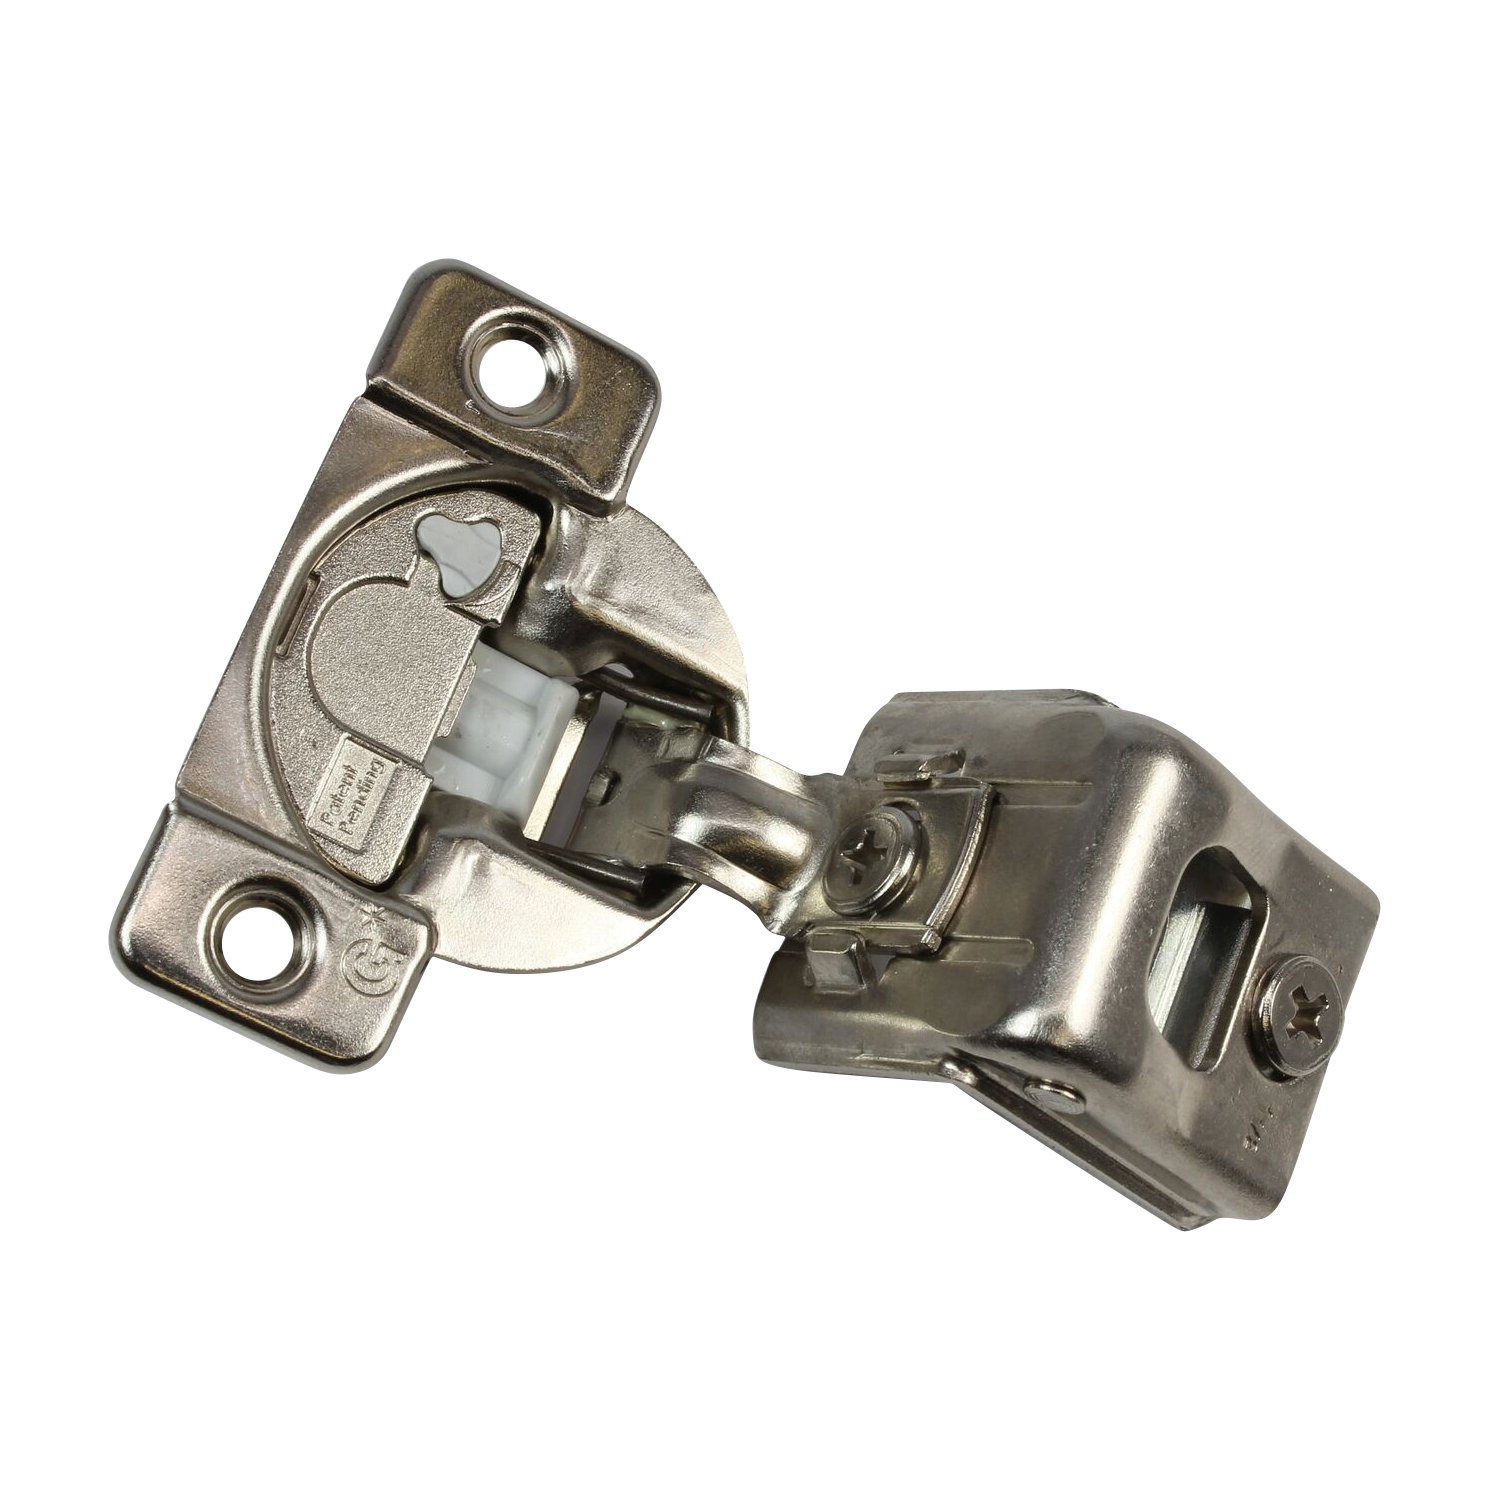 10 Pack Rok Hardware Grass TEC 864 108 Degree 1-1/2'' Overlay 3 Level Soft Close Screw On Compact Cabinet Hinge 04549A-15 3-Way Adjustment 45mm Screw Hole Pattern